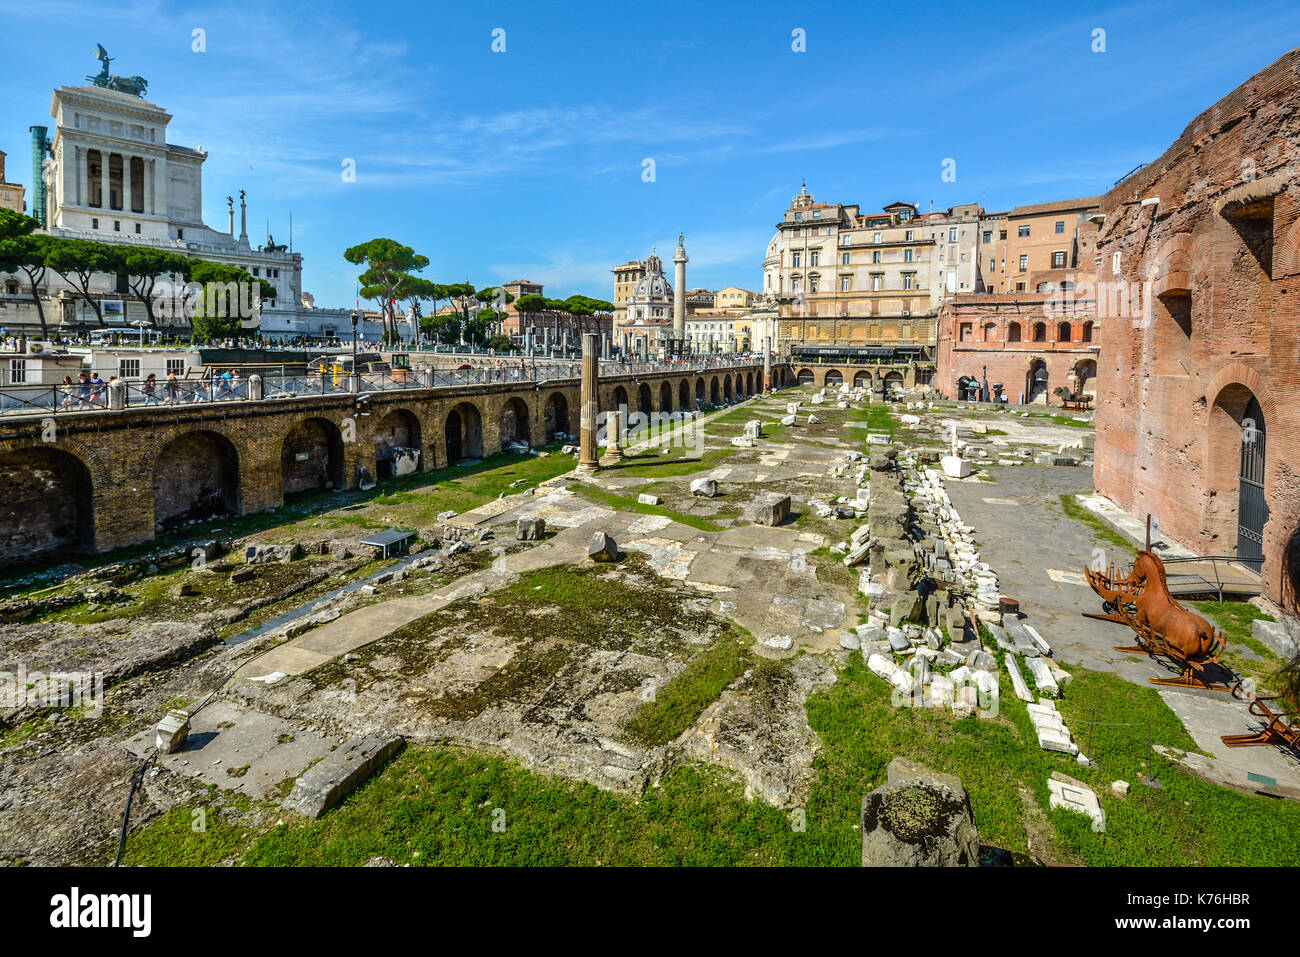 Ancient Roman ruins near the Vittorio Emanuele monument in Rome Italy on a sunny summer day - Stock Image